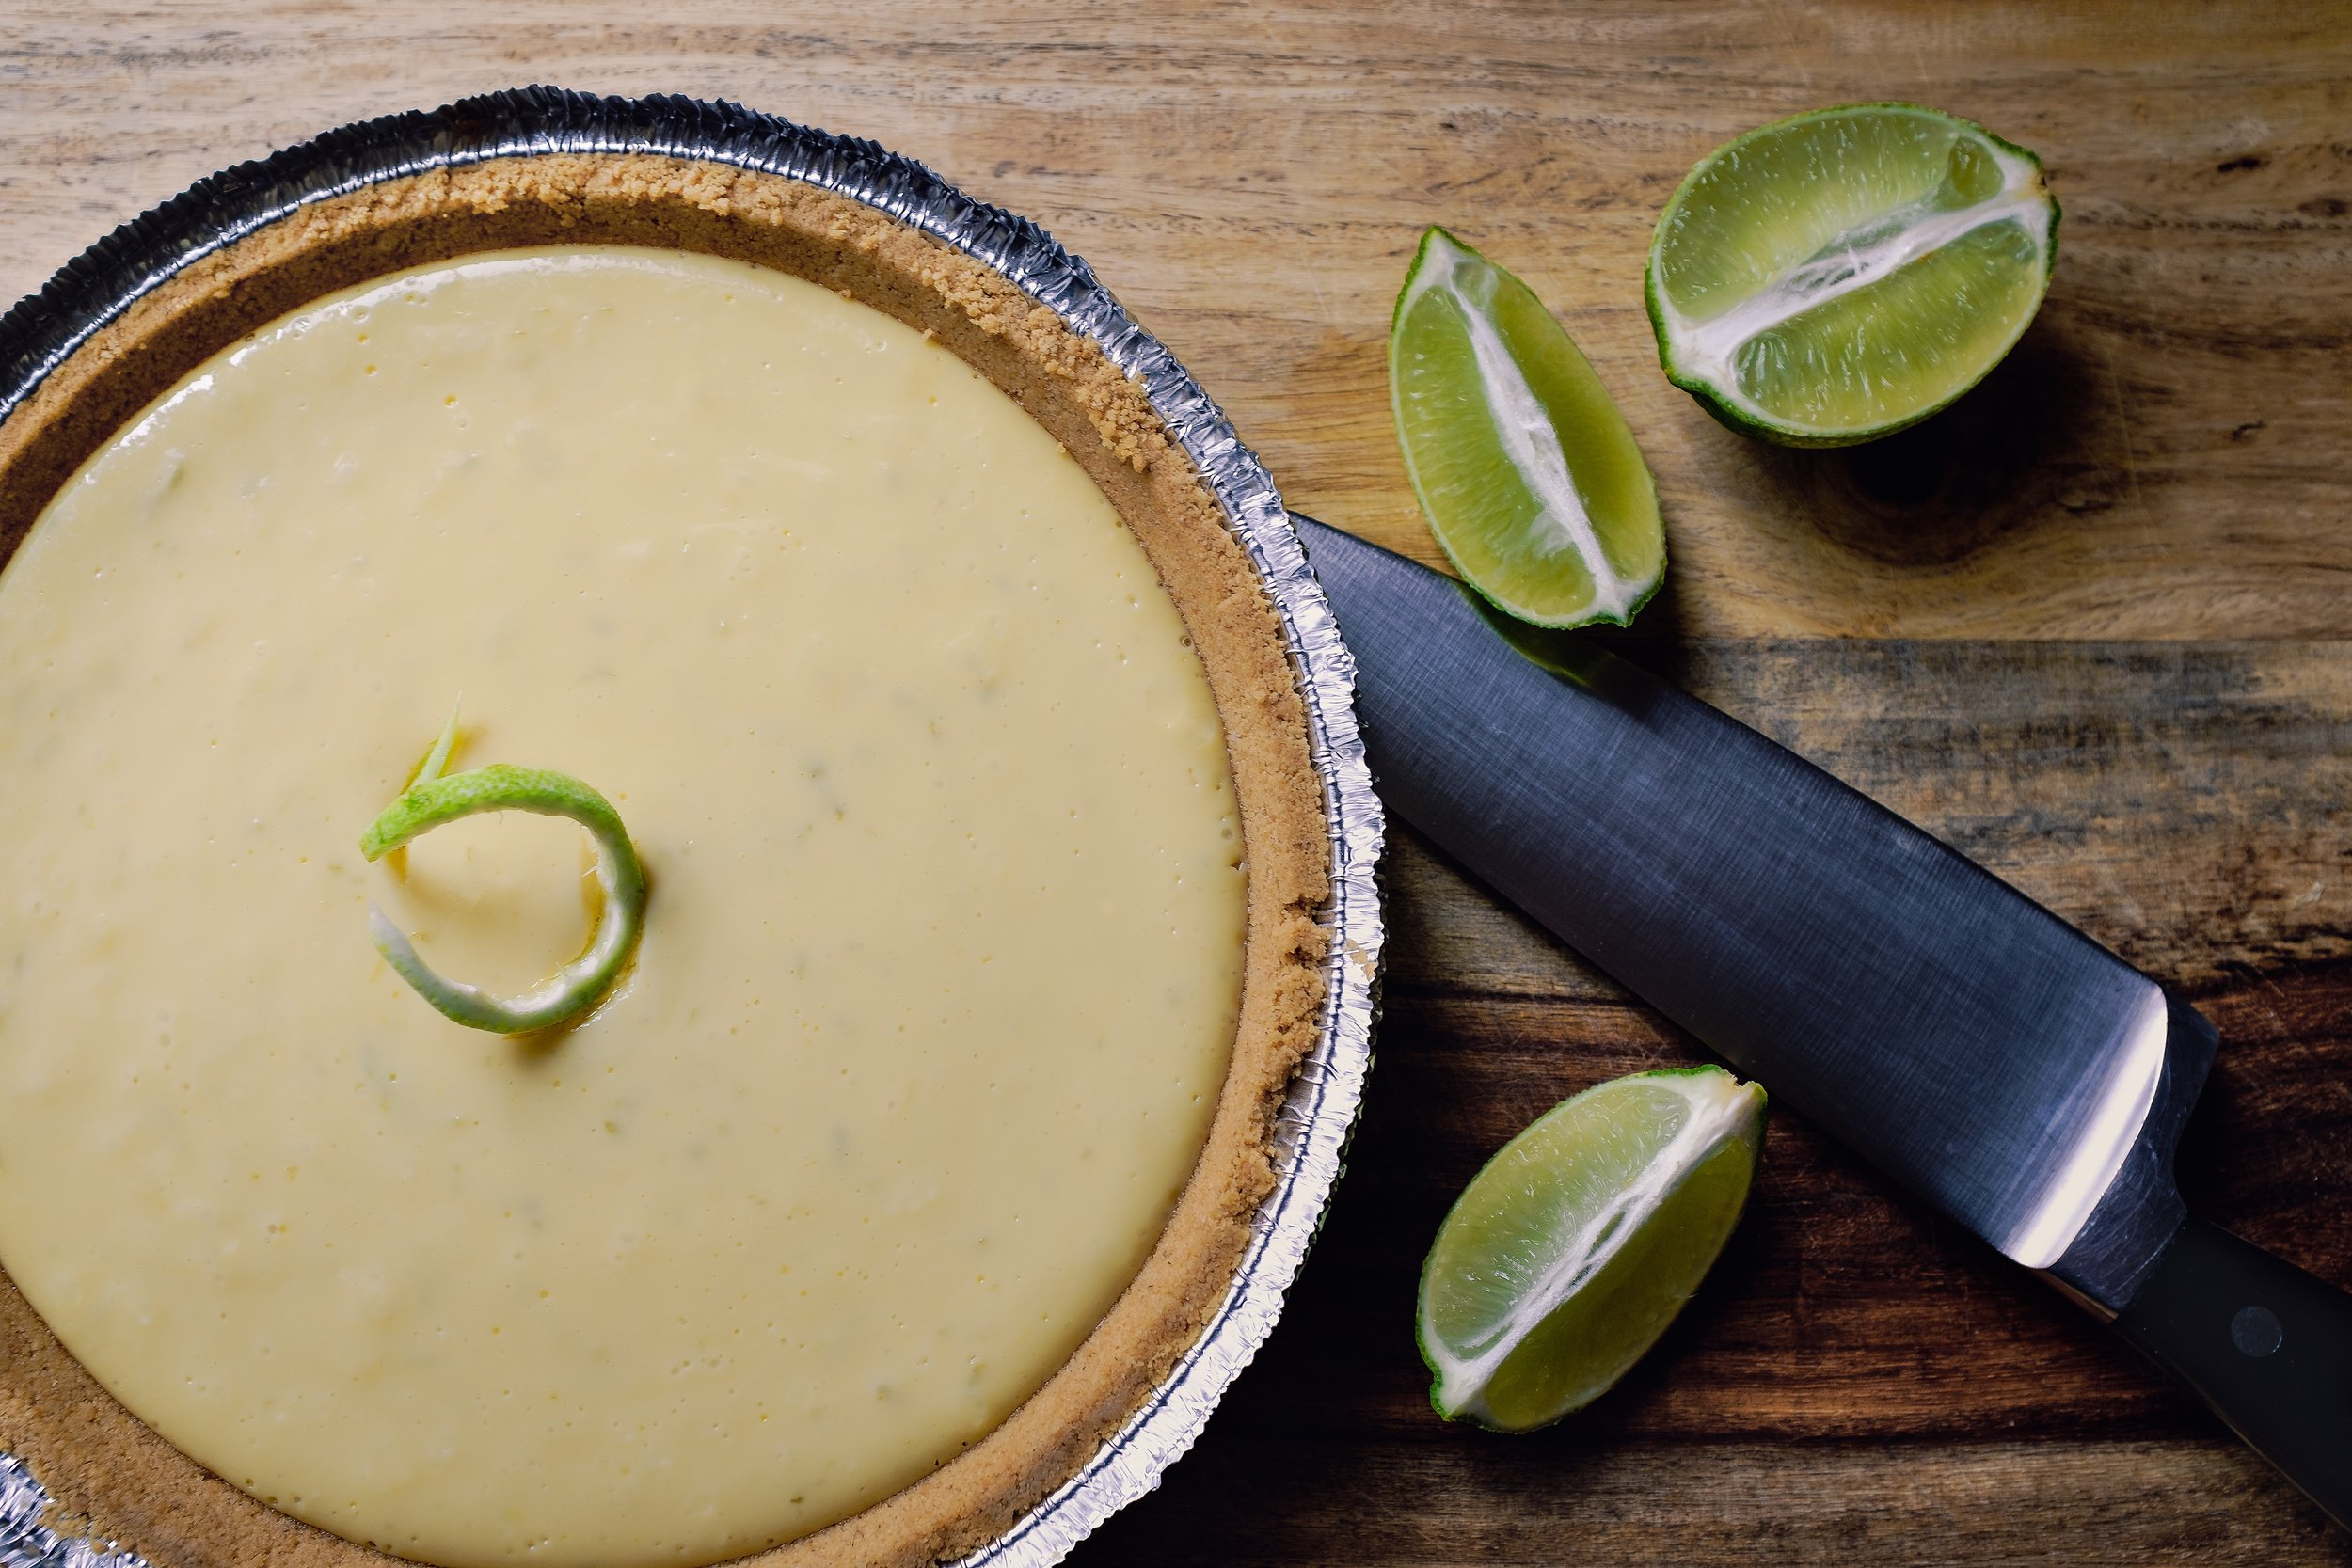 Jackonville dining key lime pie